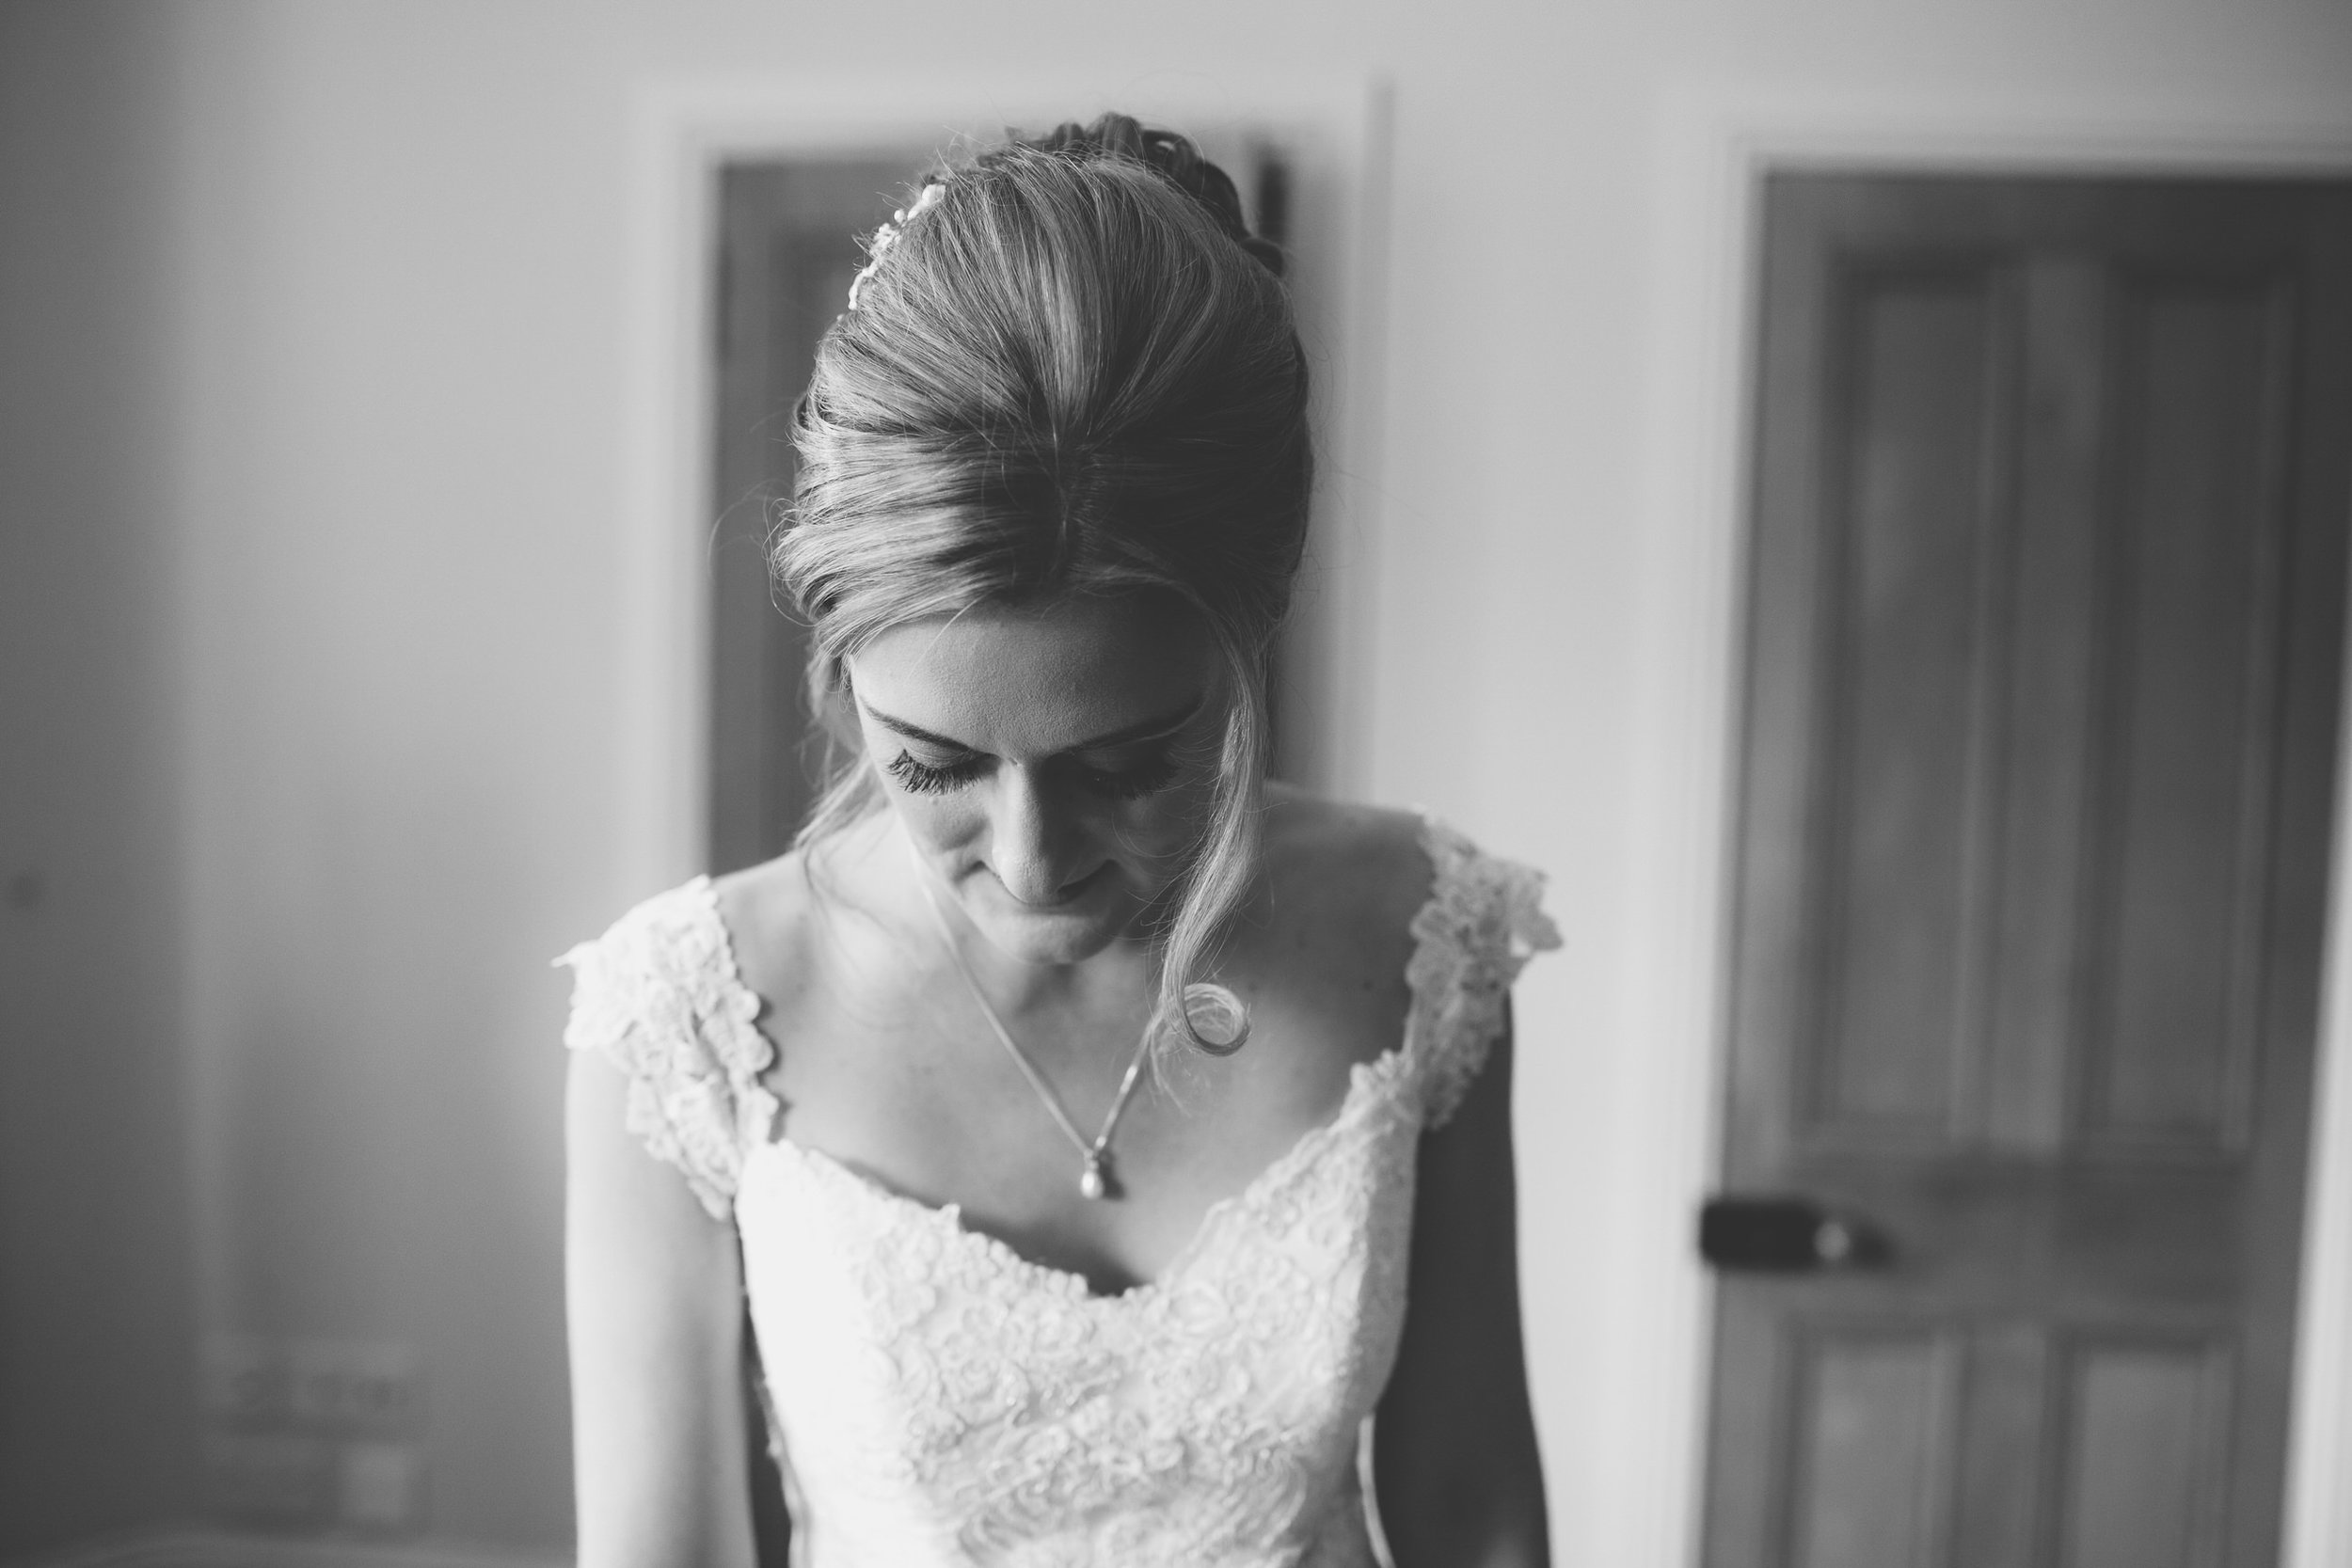 logie country house, tiffany Dawson make up artist, weddings at logie country house, wedding photographer aberdeen, wedding photography aberdeen, aberdeen wedding photography,